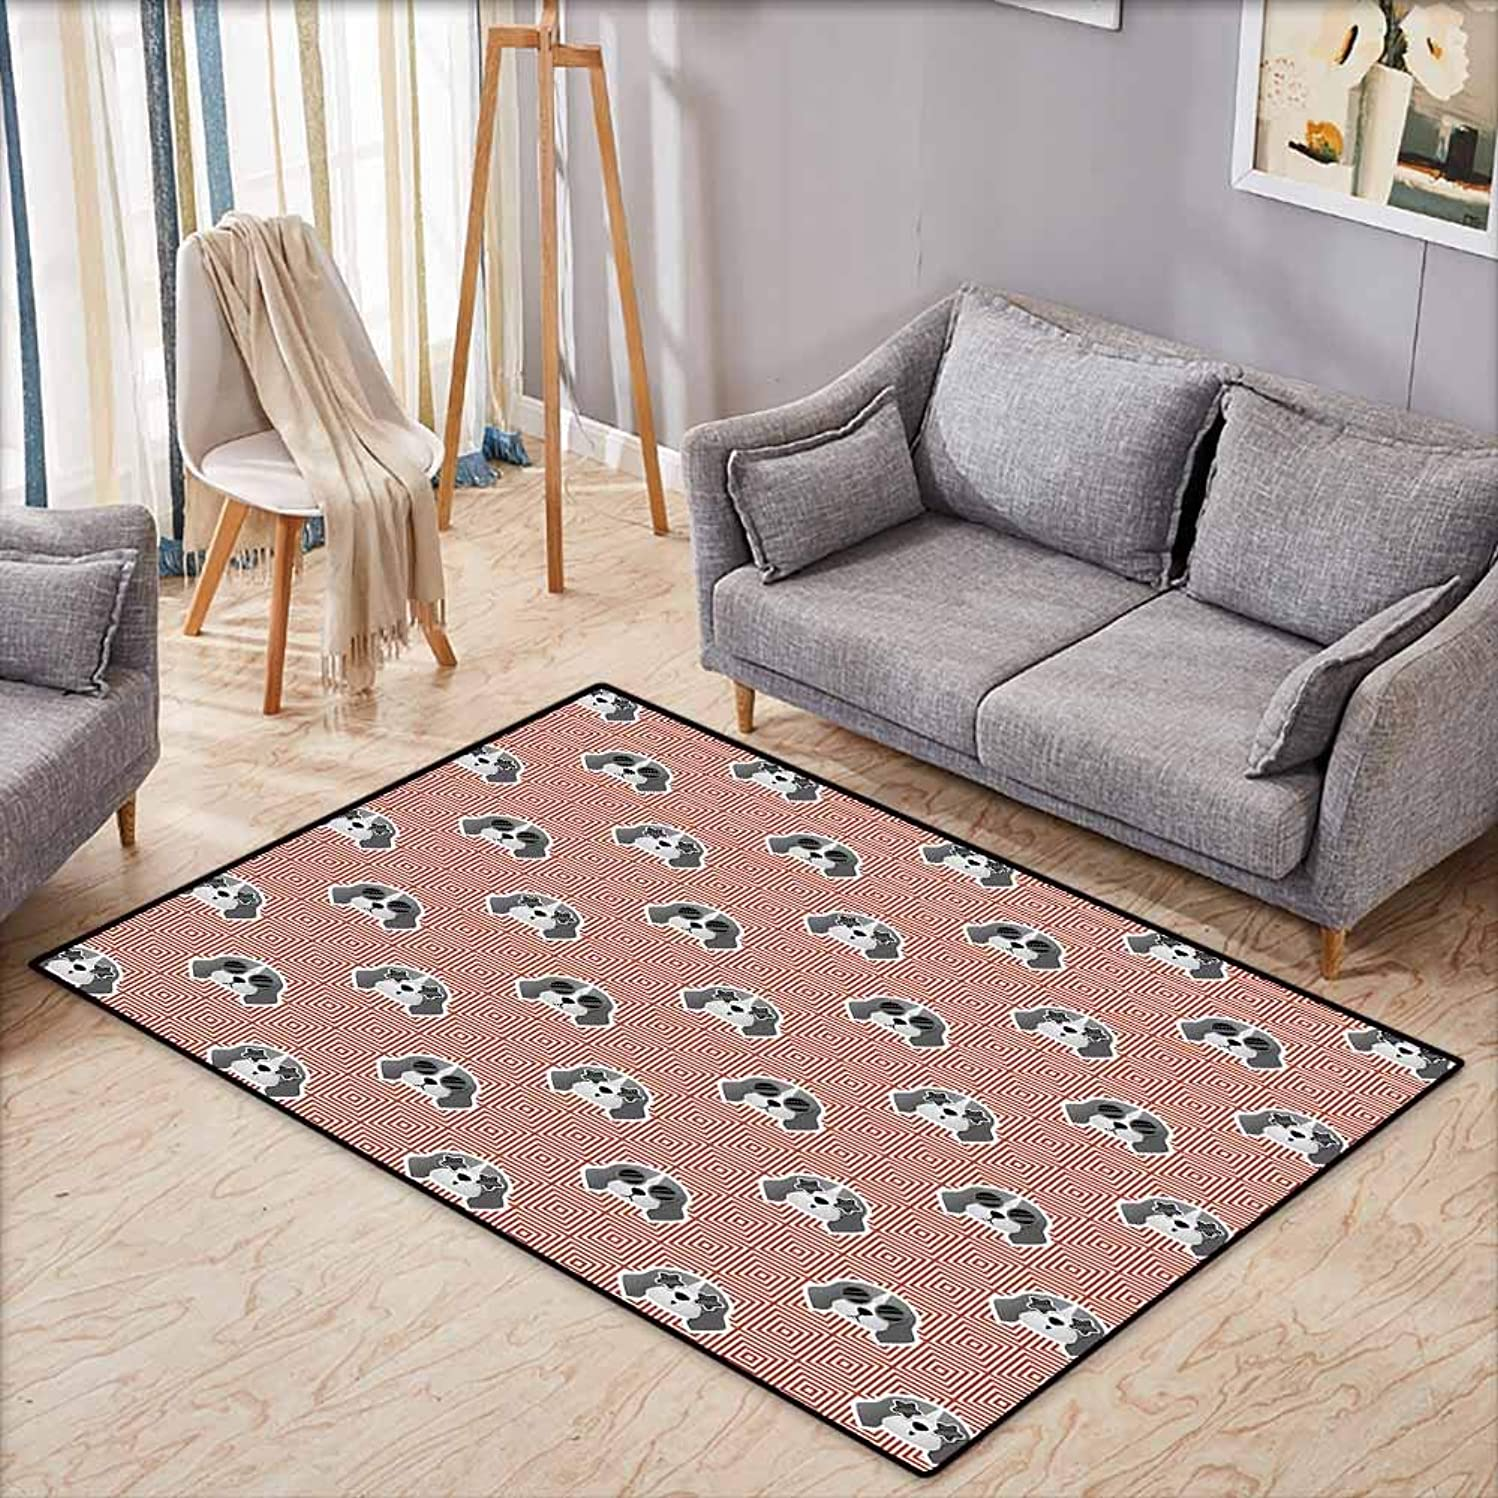 Outdoor Patio Rug,Dog Beagle Puppies with Sunglasses Abstract Geometric Pattern Checkered Squares,Anti-Slip Doormat Footpad Machine Washable,4'11